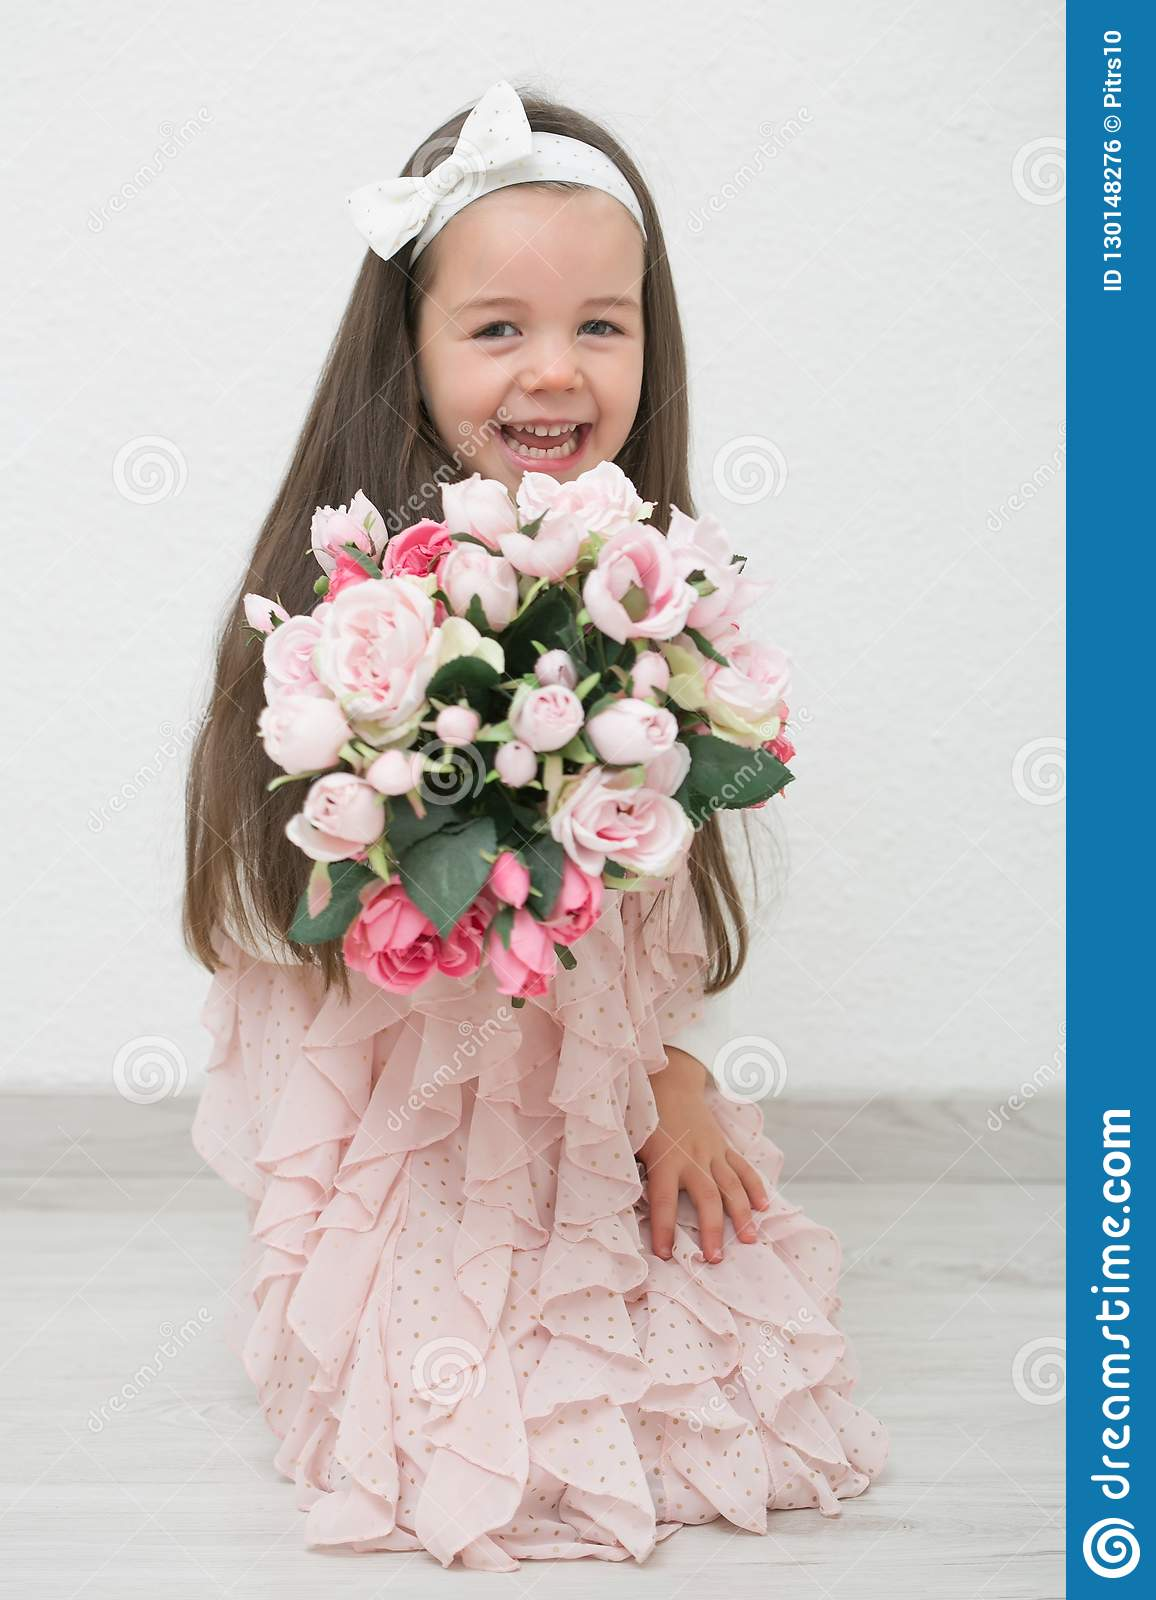 Little Girl Holding Flowers Stock Image - Image of people